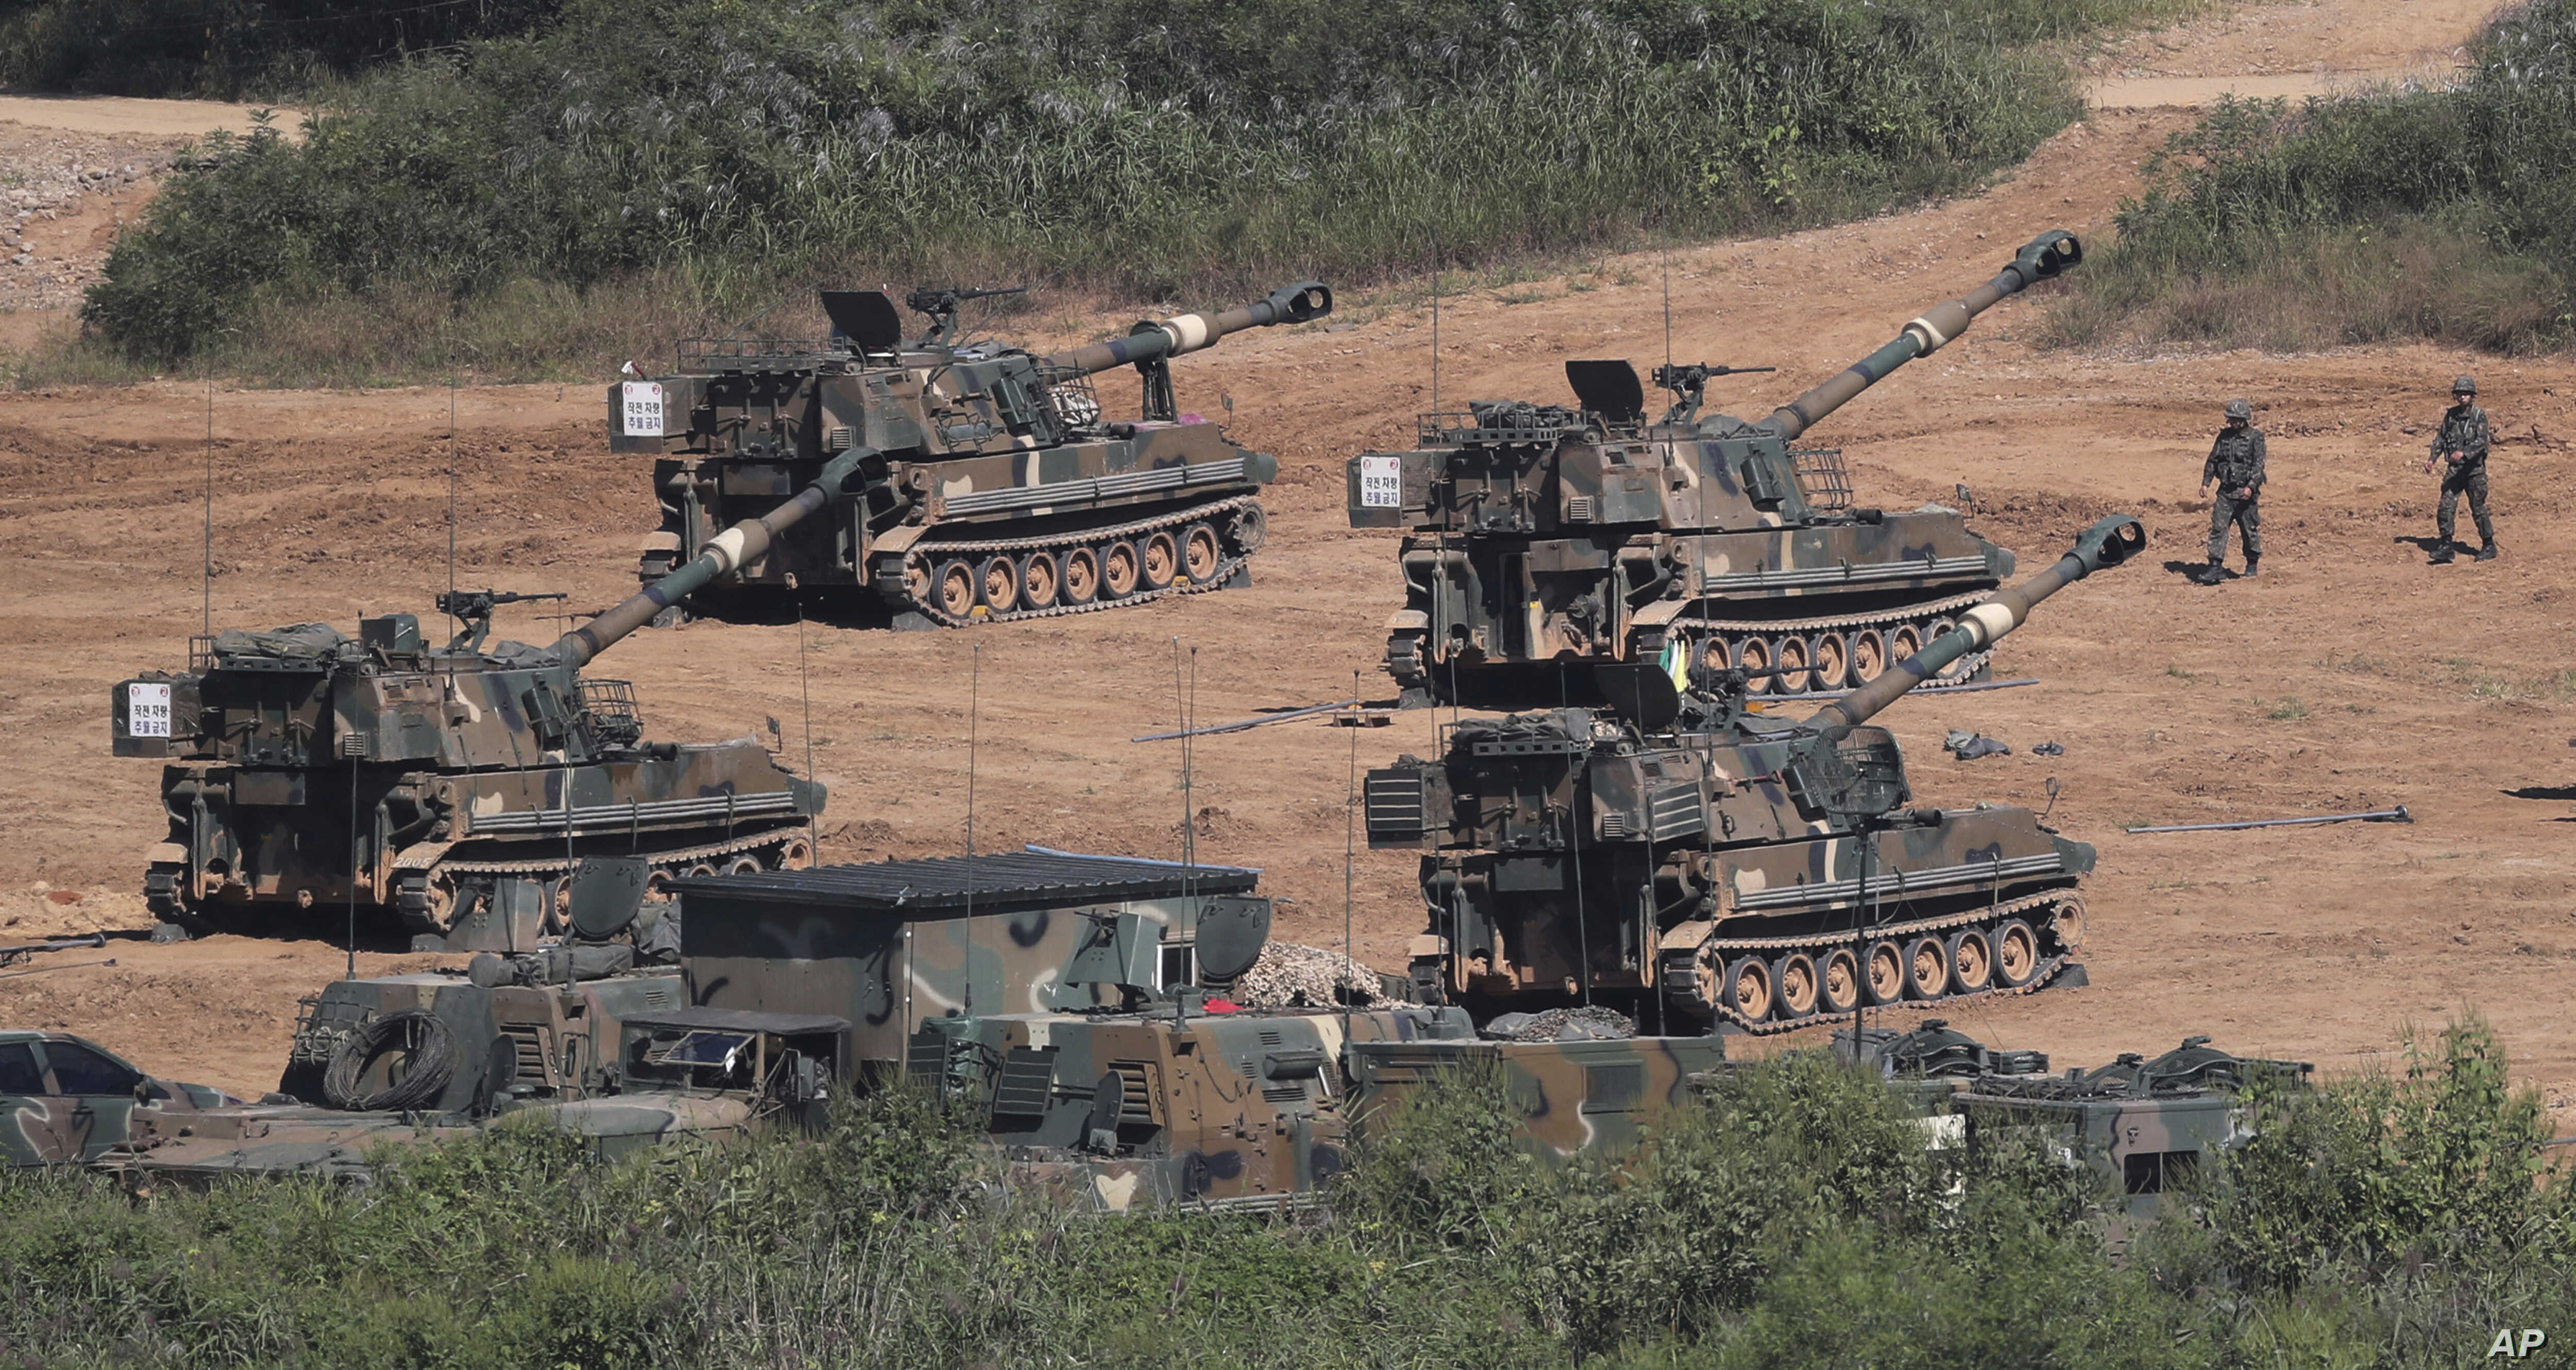 South Korean army K-55 self-propelled howitzers conduct a military exercise in Paju, South Korea, near the border with North Korea, Sept. 15, 2017.